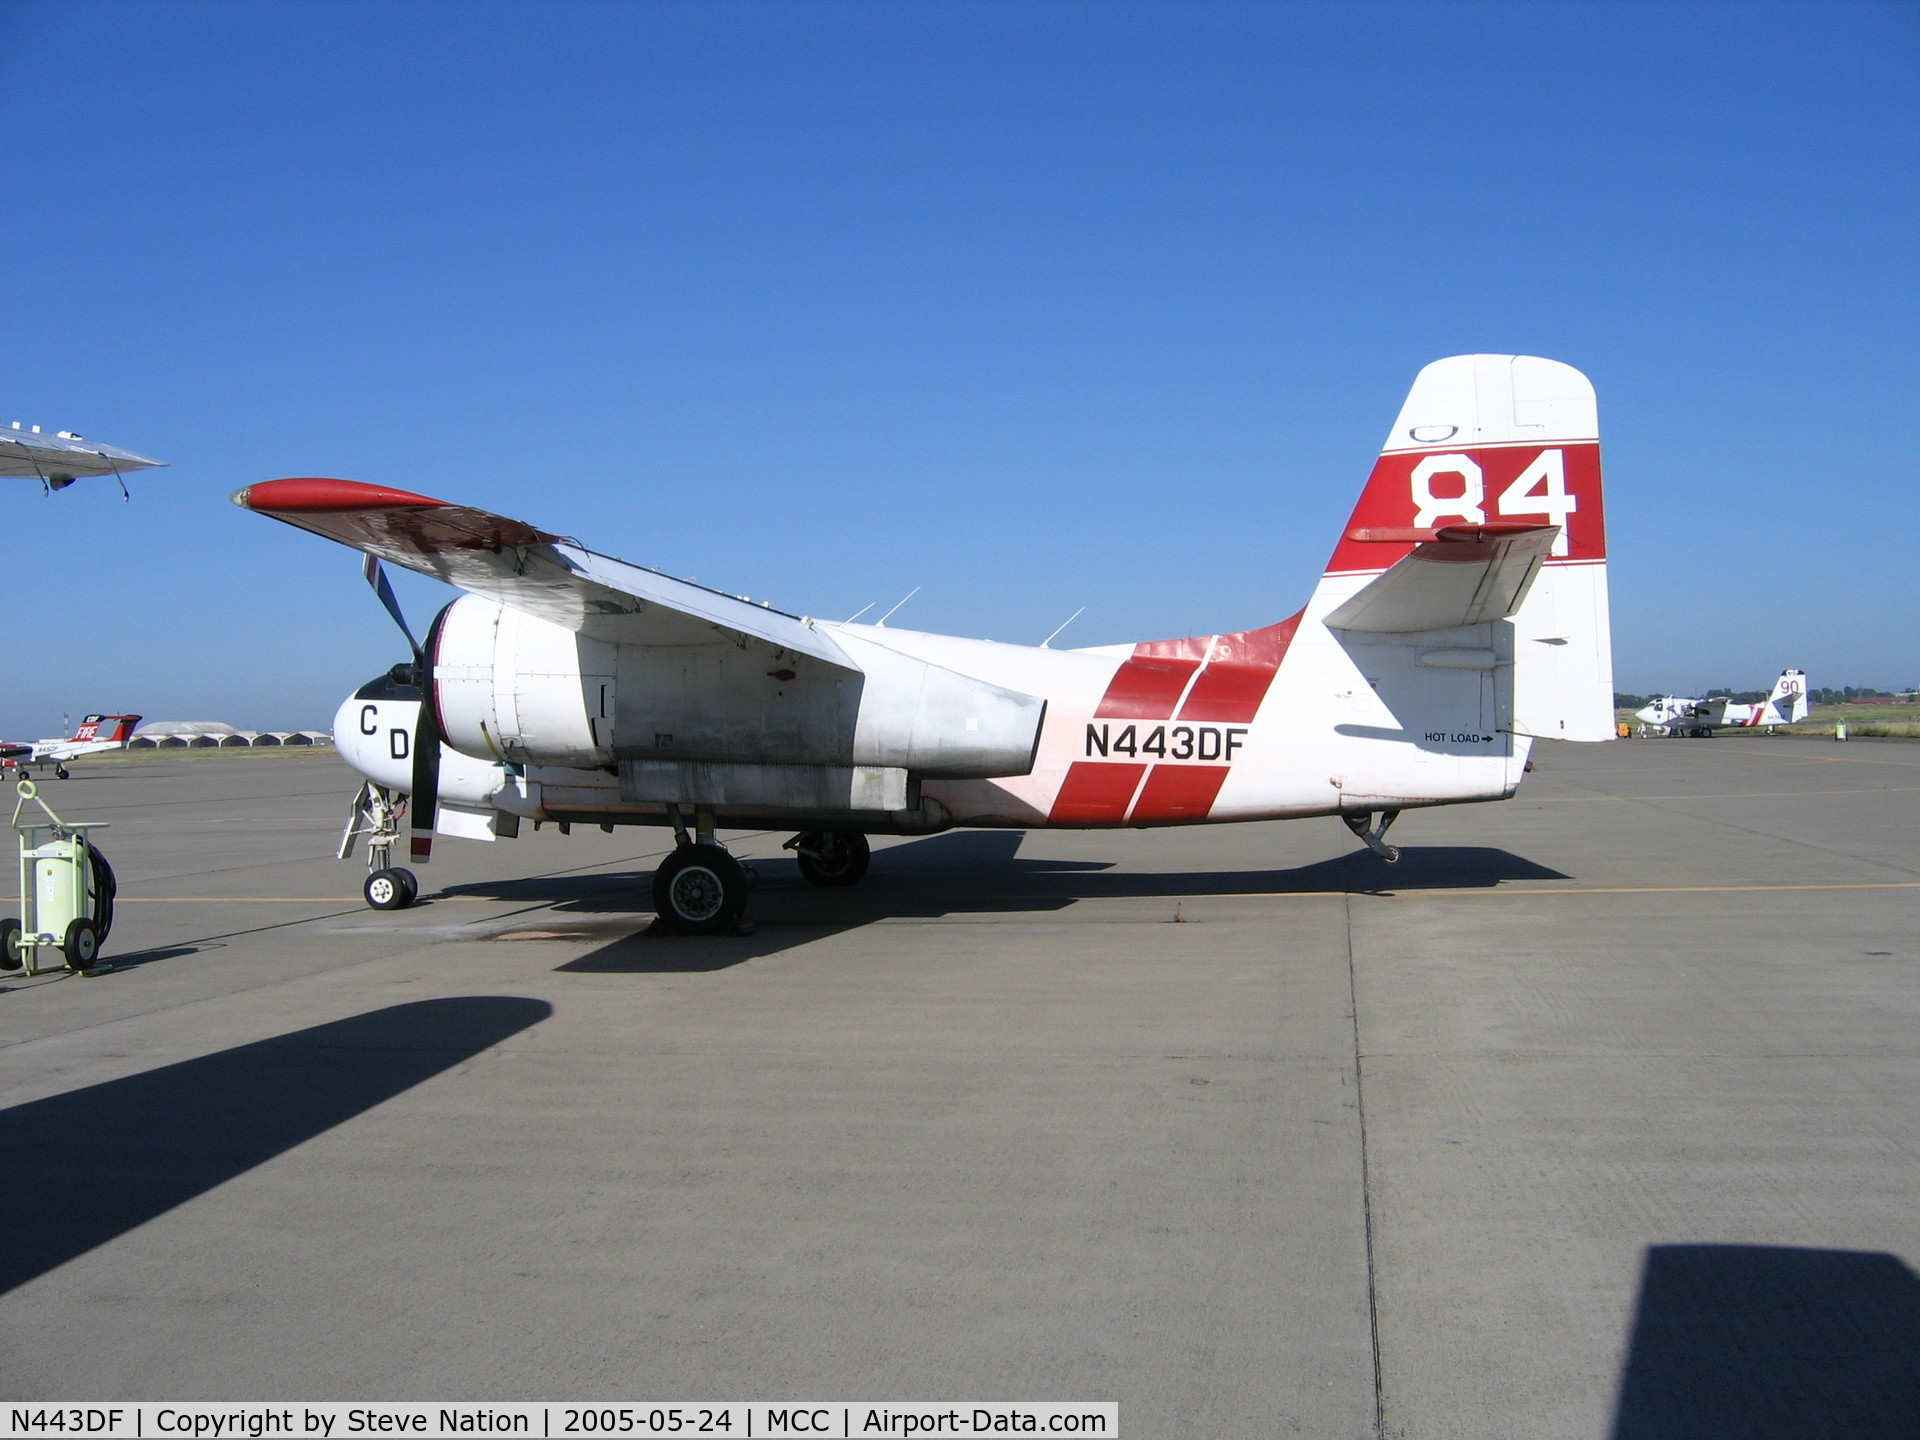 N443DF, Grumman S2F-1 Tracker C/N 195, CDF TS-2A #84 on CDF ramp at McClellan AFB, CA (retired after 2004 season)